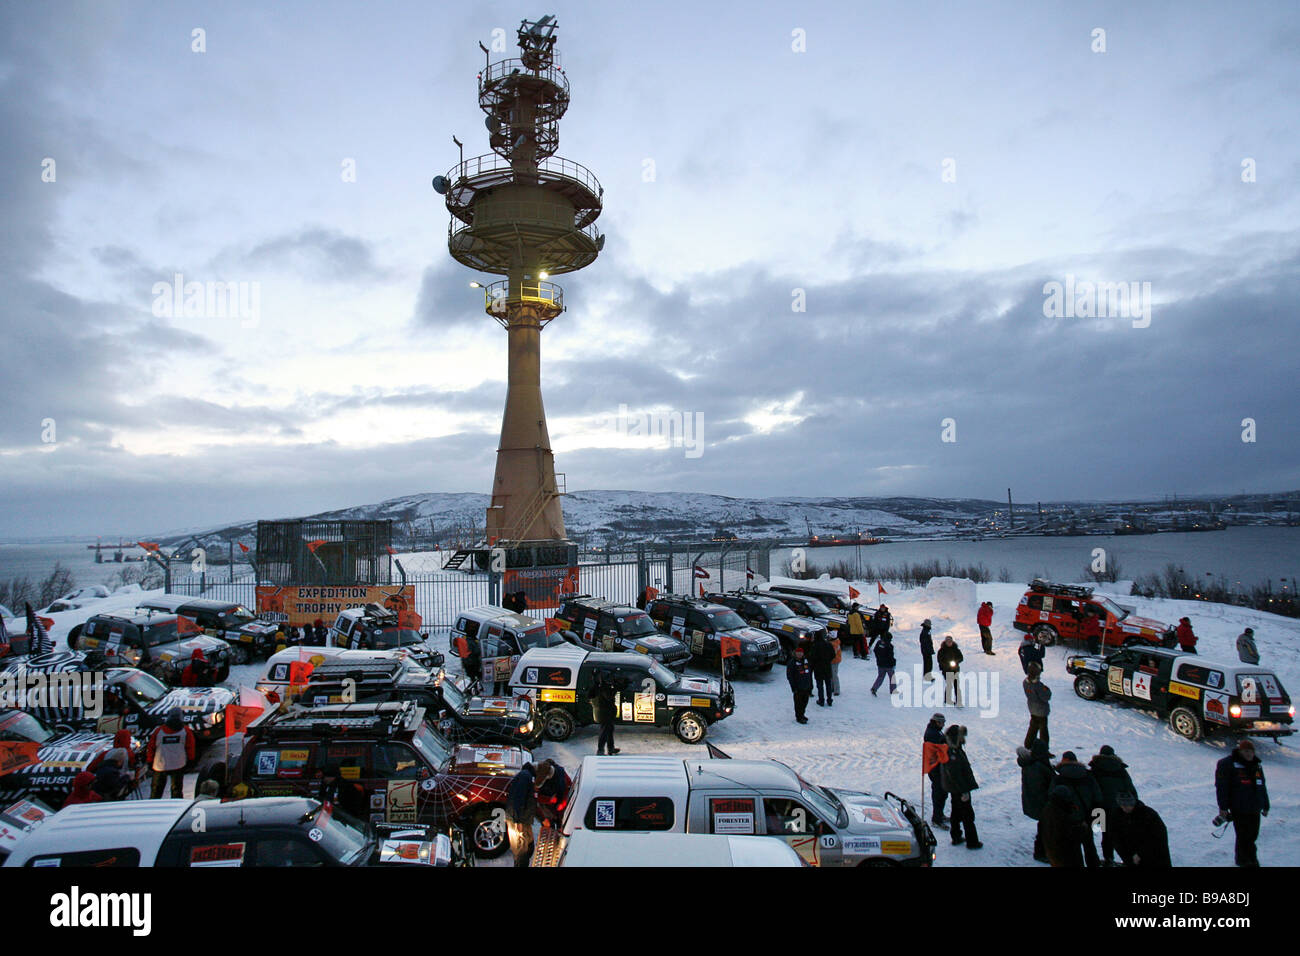 At the second stage of the transcontinental offroader race Expedition Trophy 2006 Murmansk Vladivostok beginning - Stock Image